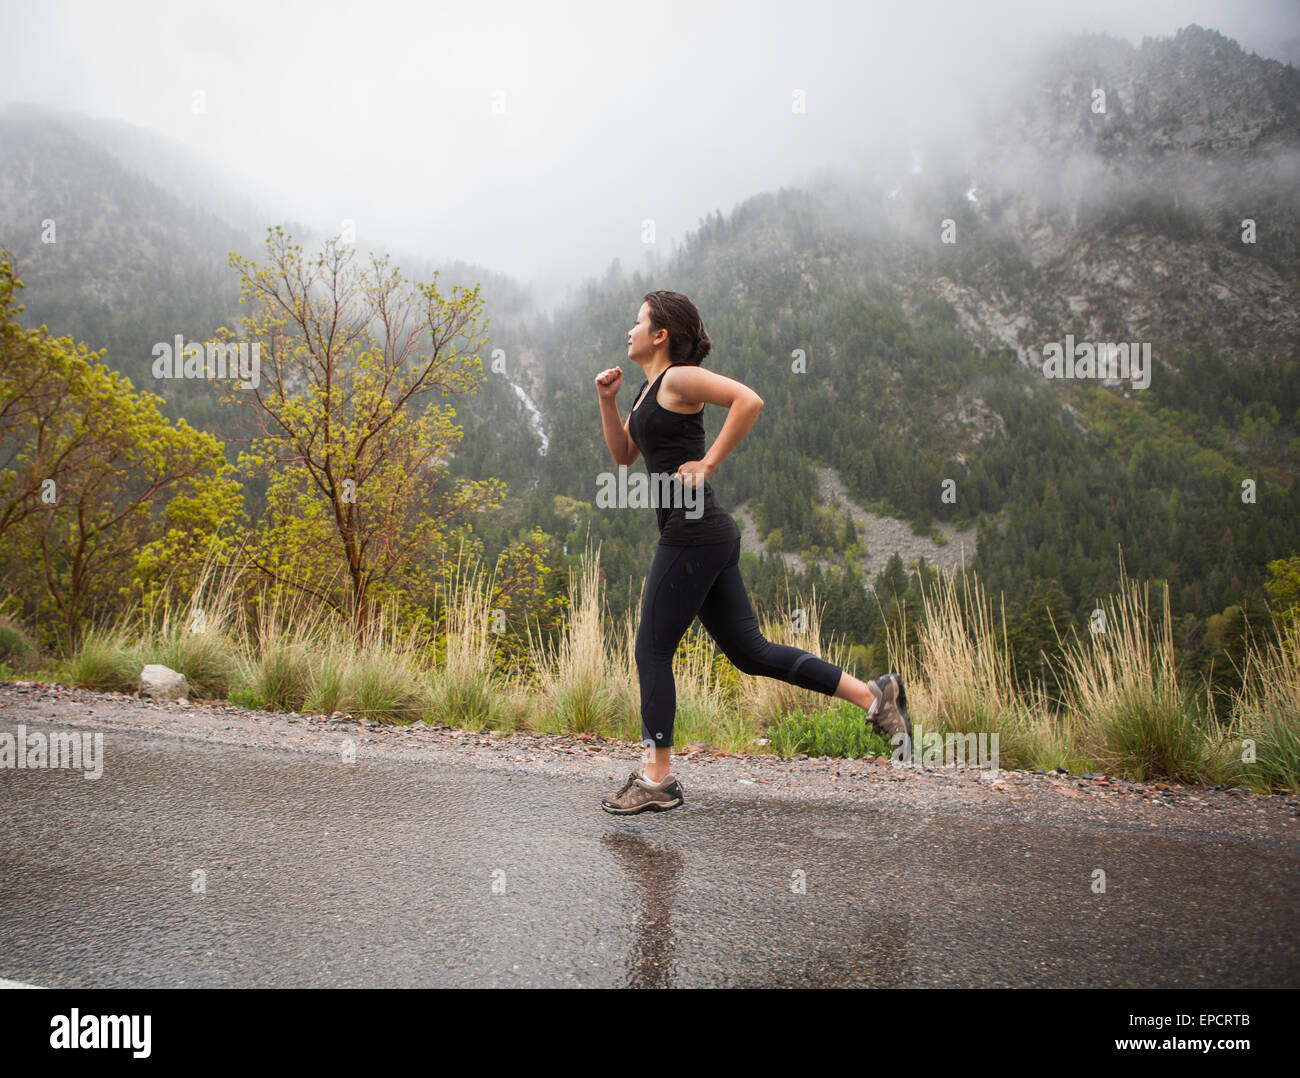 woman running in the rain on road in mountains - Stock Image